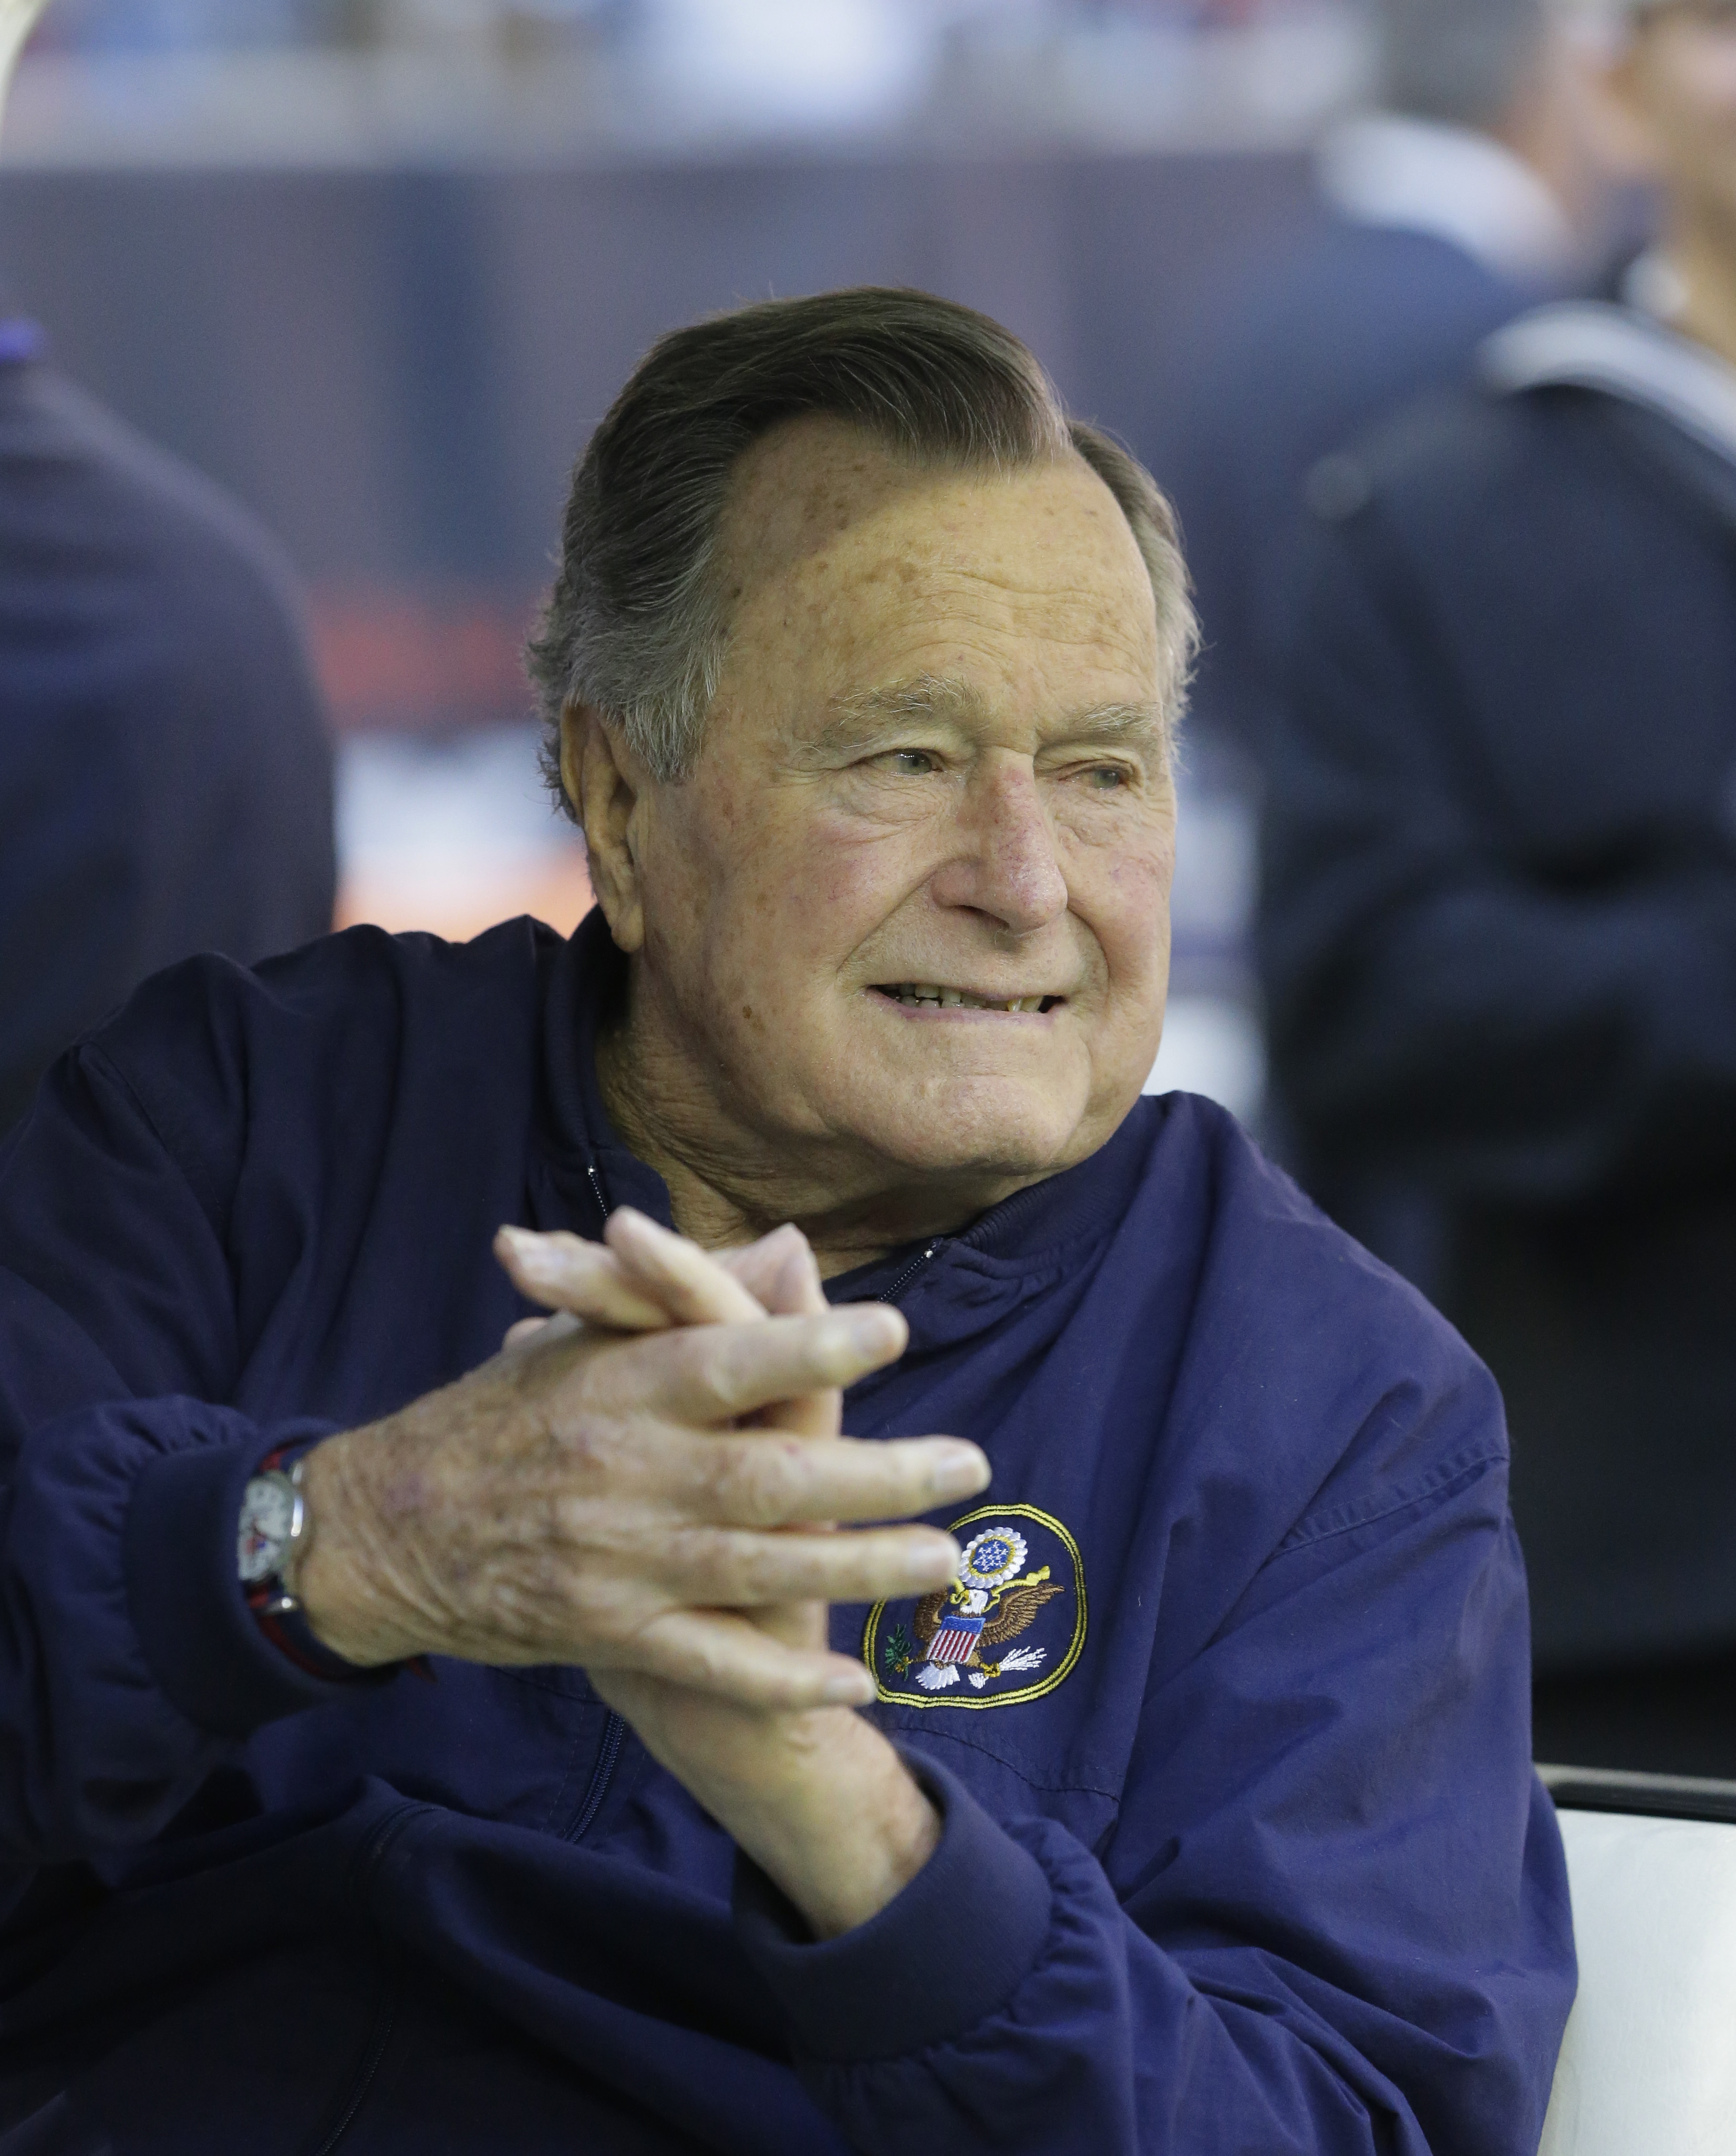 Former president George H. W. Bush attends an NFL football game between the Houston Texans an Cincinnati Bengals on Nov. 23, 2014, in Houston.